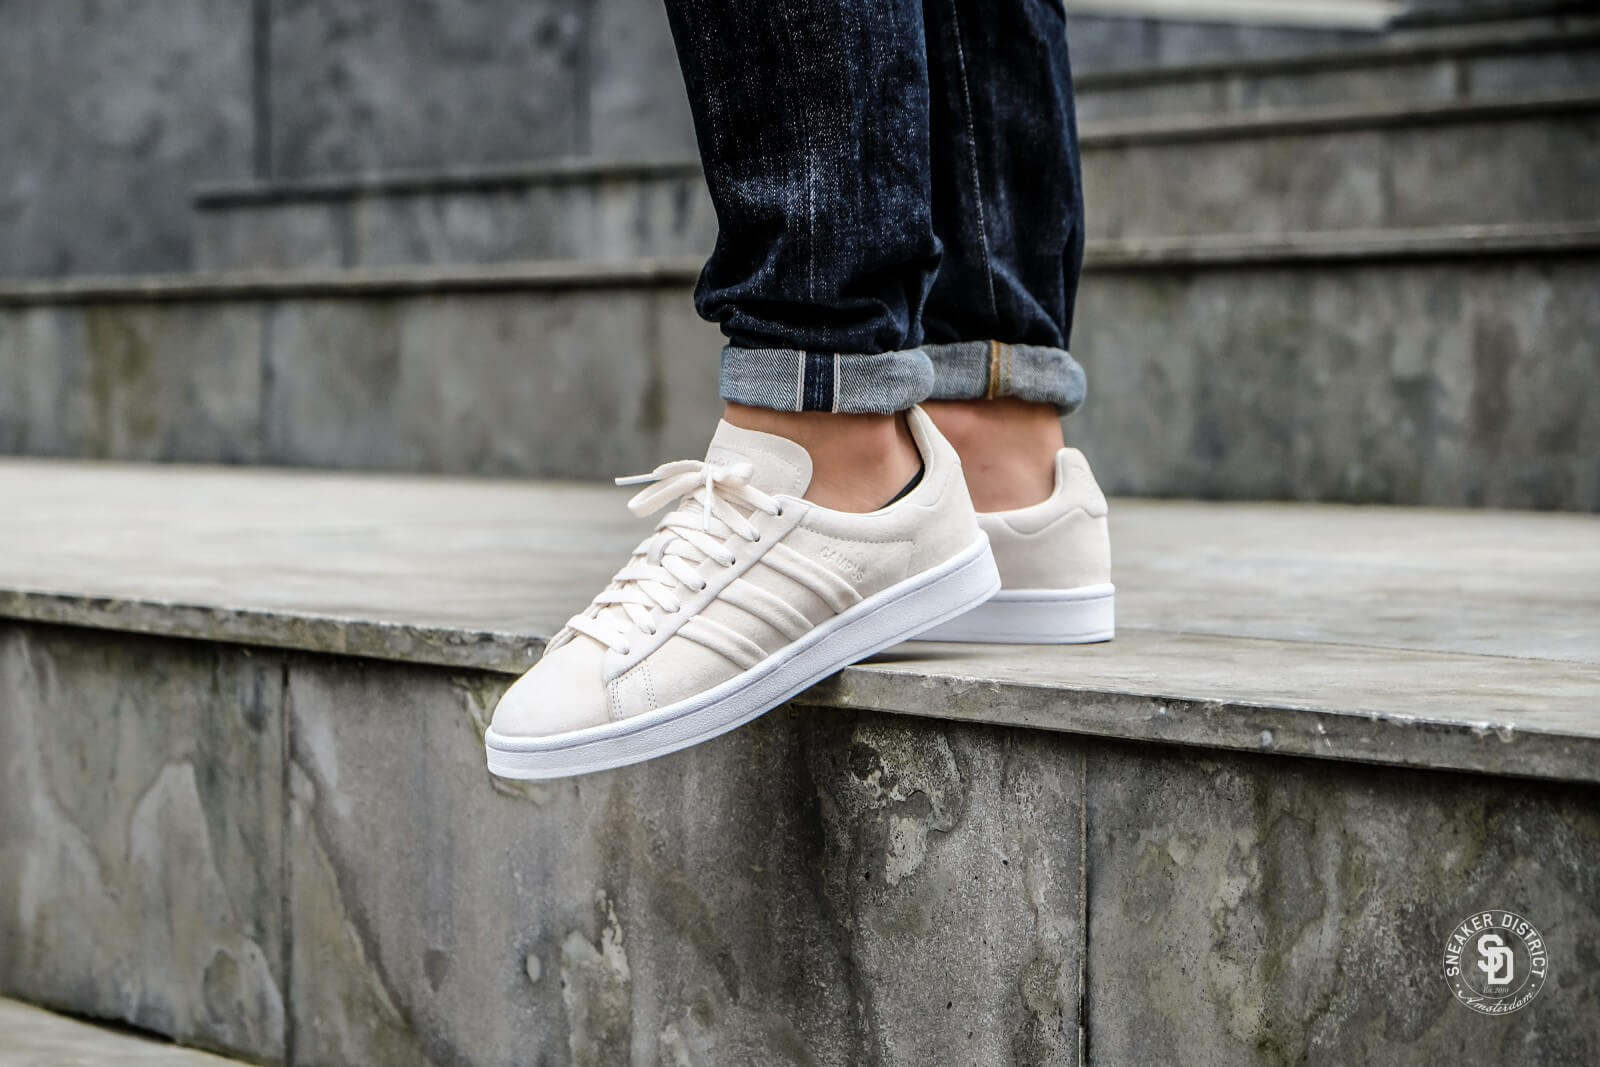 Adidas Campus Stitch and Turn Chalk WhiteFootwear White BB6744